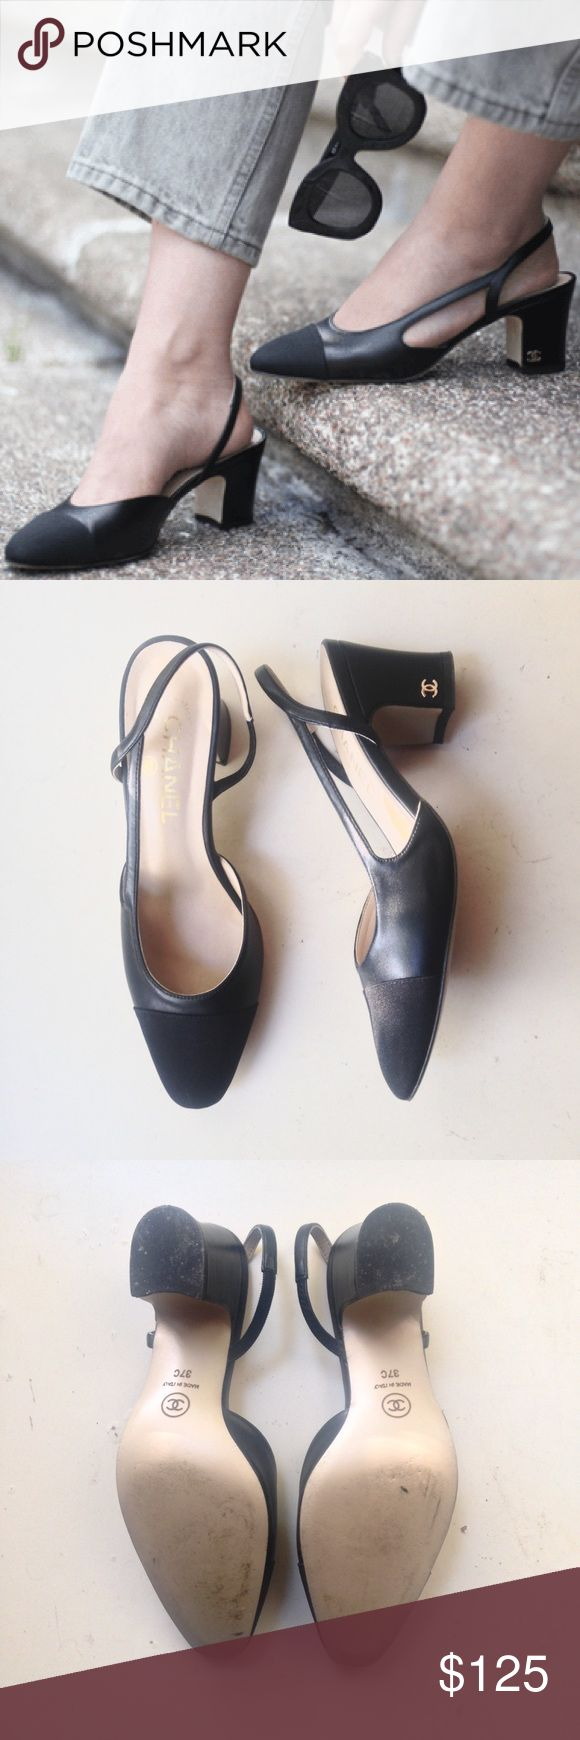 CHANEL CC Logo 2016 Two Tone Slingbacks Black 7 37 Price firm. CHANEL CC Logo 2016 Two Tone Slingbacks Black 7 37   Worn twice. This listing includes shoes and box only. #CHANEL #chanelslingbacks #instadaily #instagramfamous #instagram #coco #cocochanel #cute #cool #cclogo #luxury #lookbook #leather #love #famous #celebrity #losangeles #newyork #london #paris CHANEL Shoes Heels